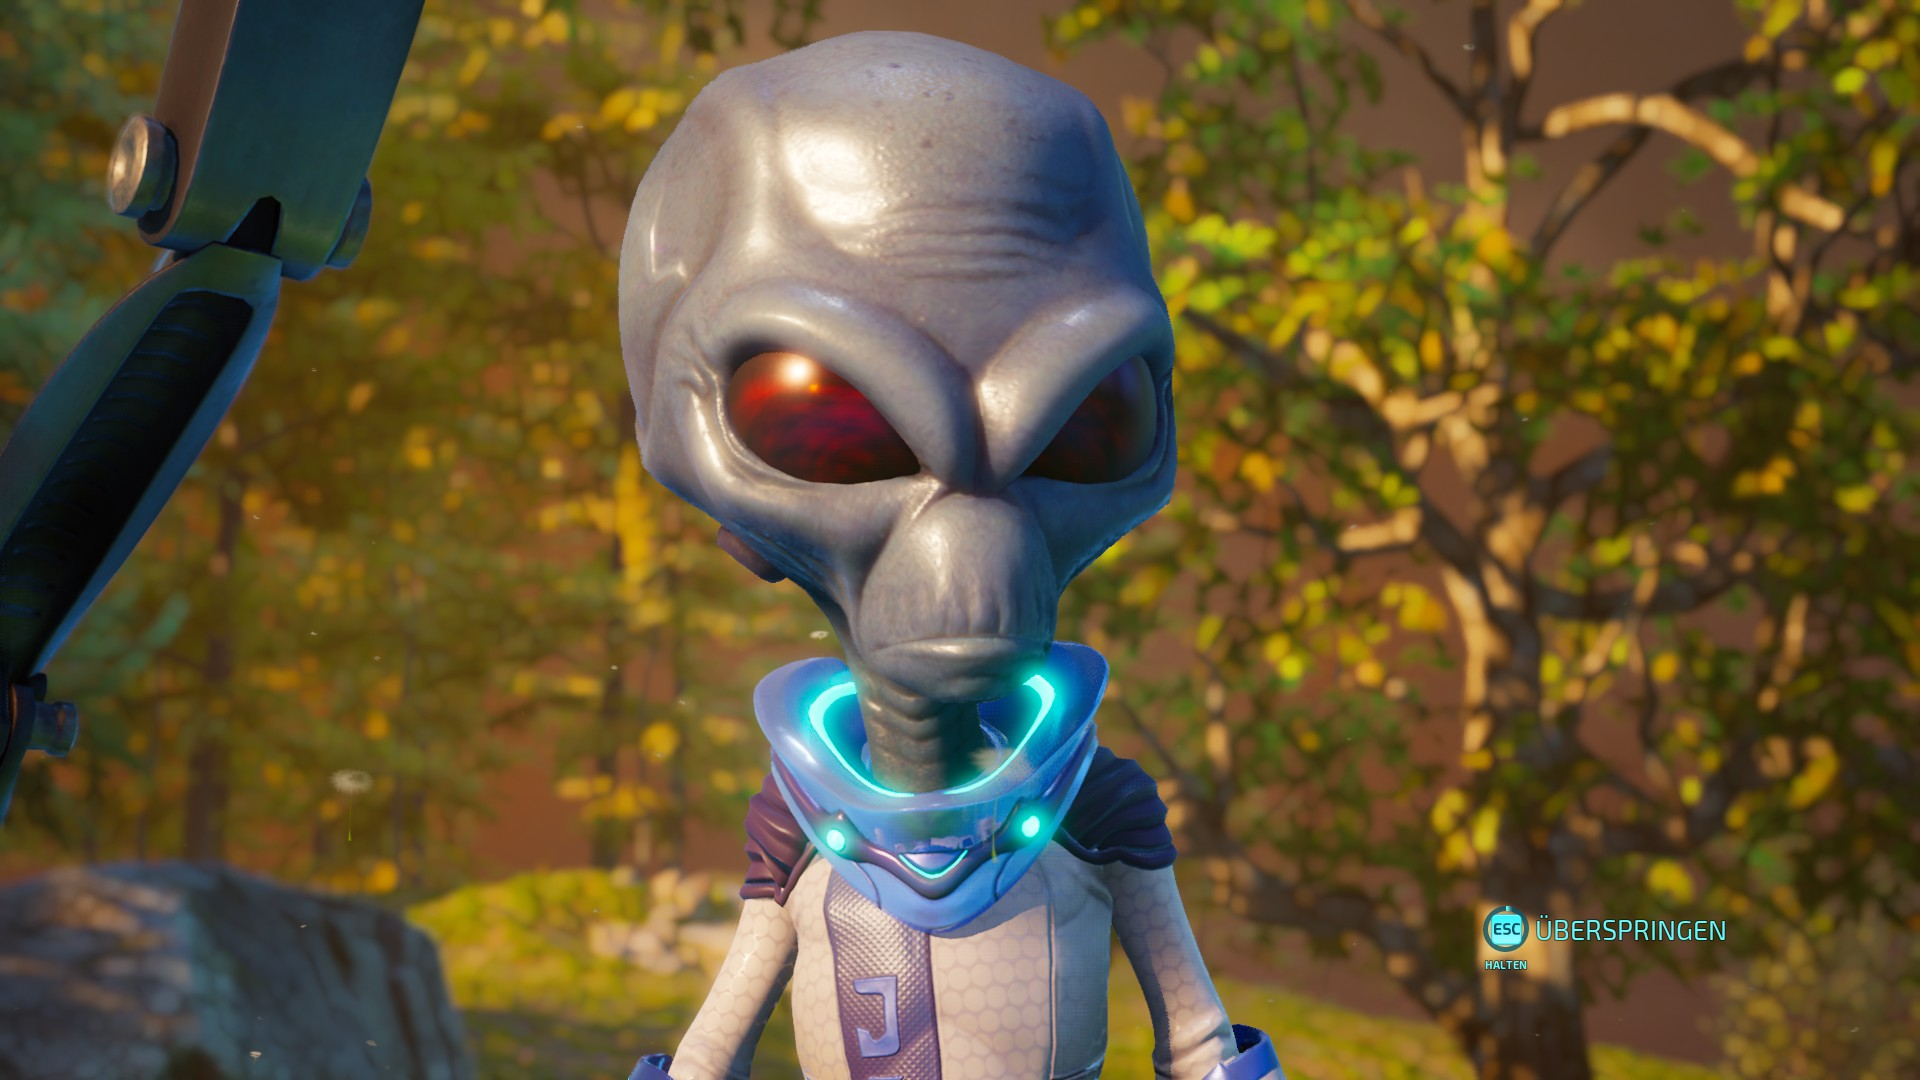 Destroy All Humans! (Remake) – Rohrkrepierer oder modernisierter Klassiker?